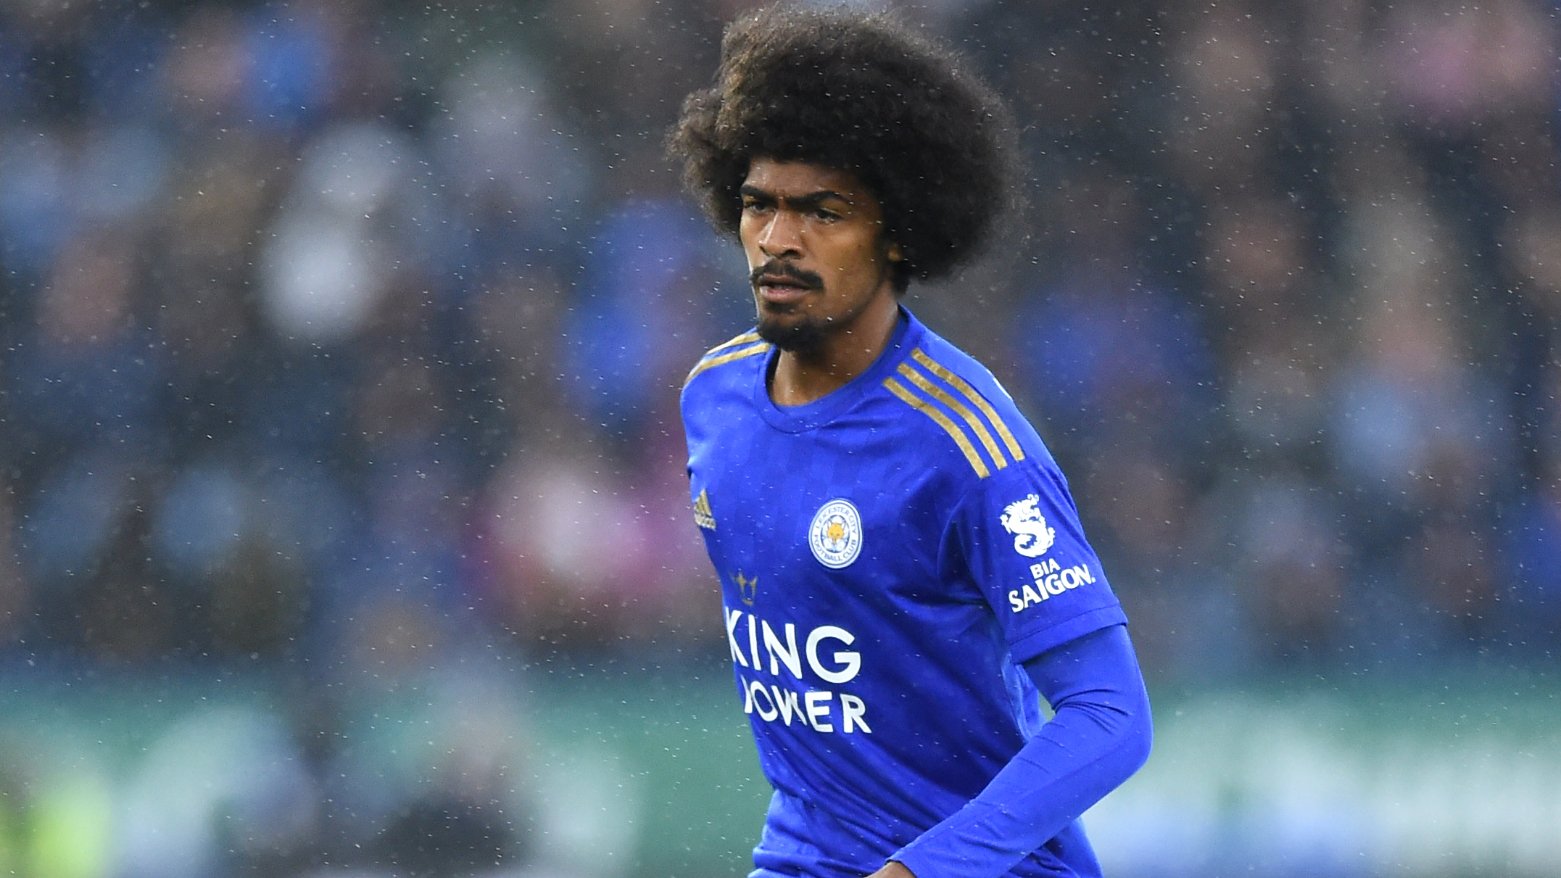 Leicester City news: Foxes report racist abuse of midfielder Hamza Choudhury to police after Liverpool Premier League defeat | Goal.com